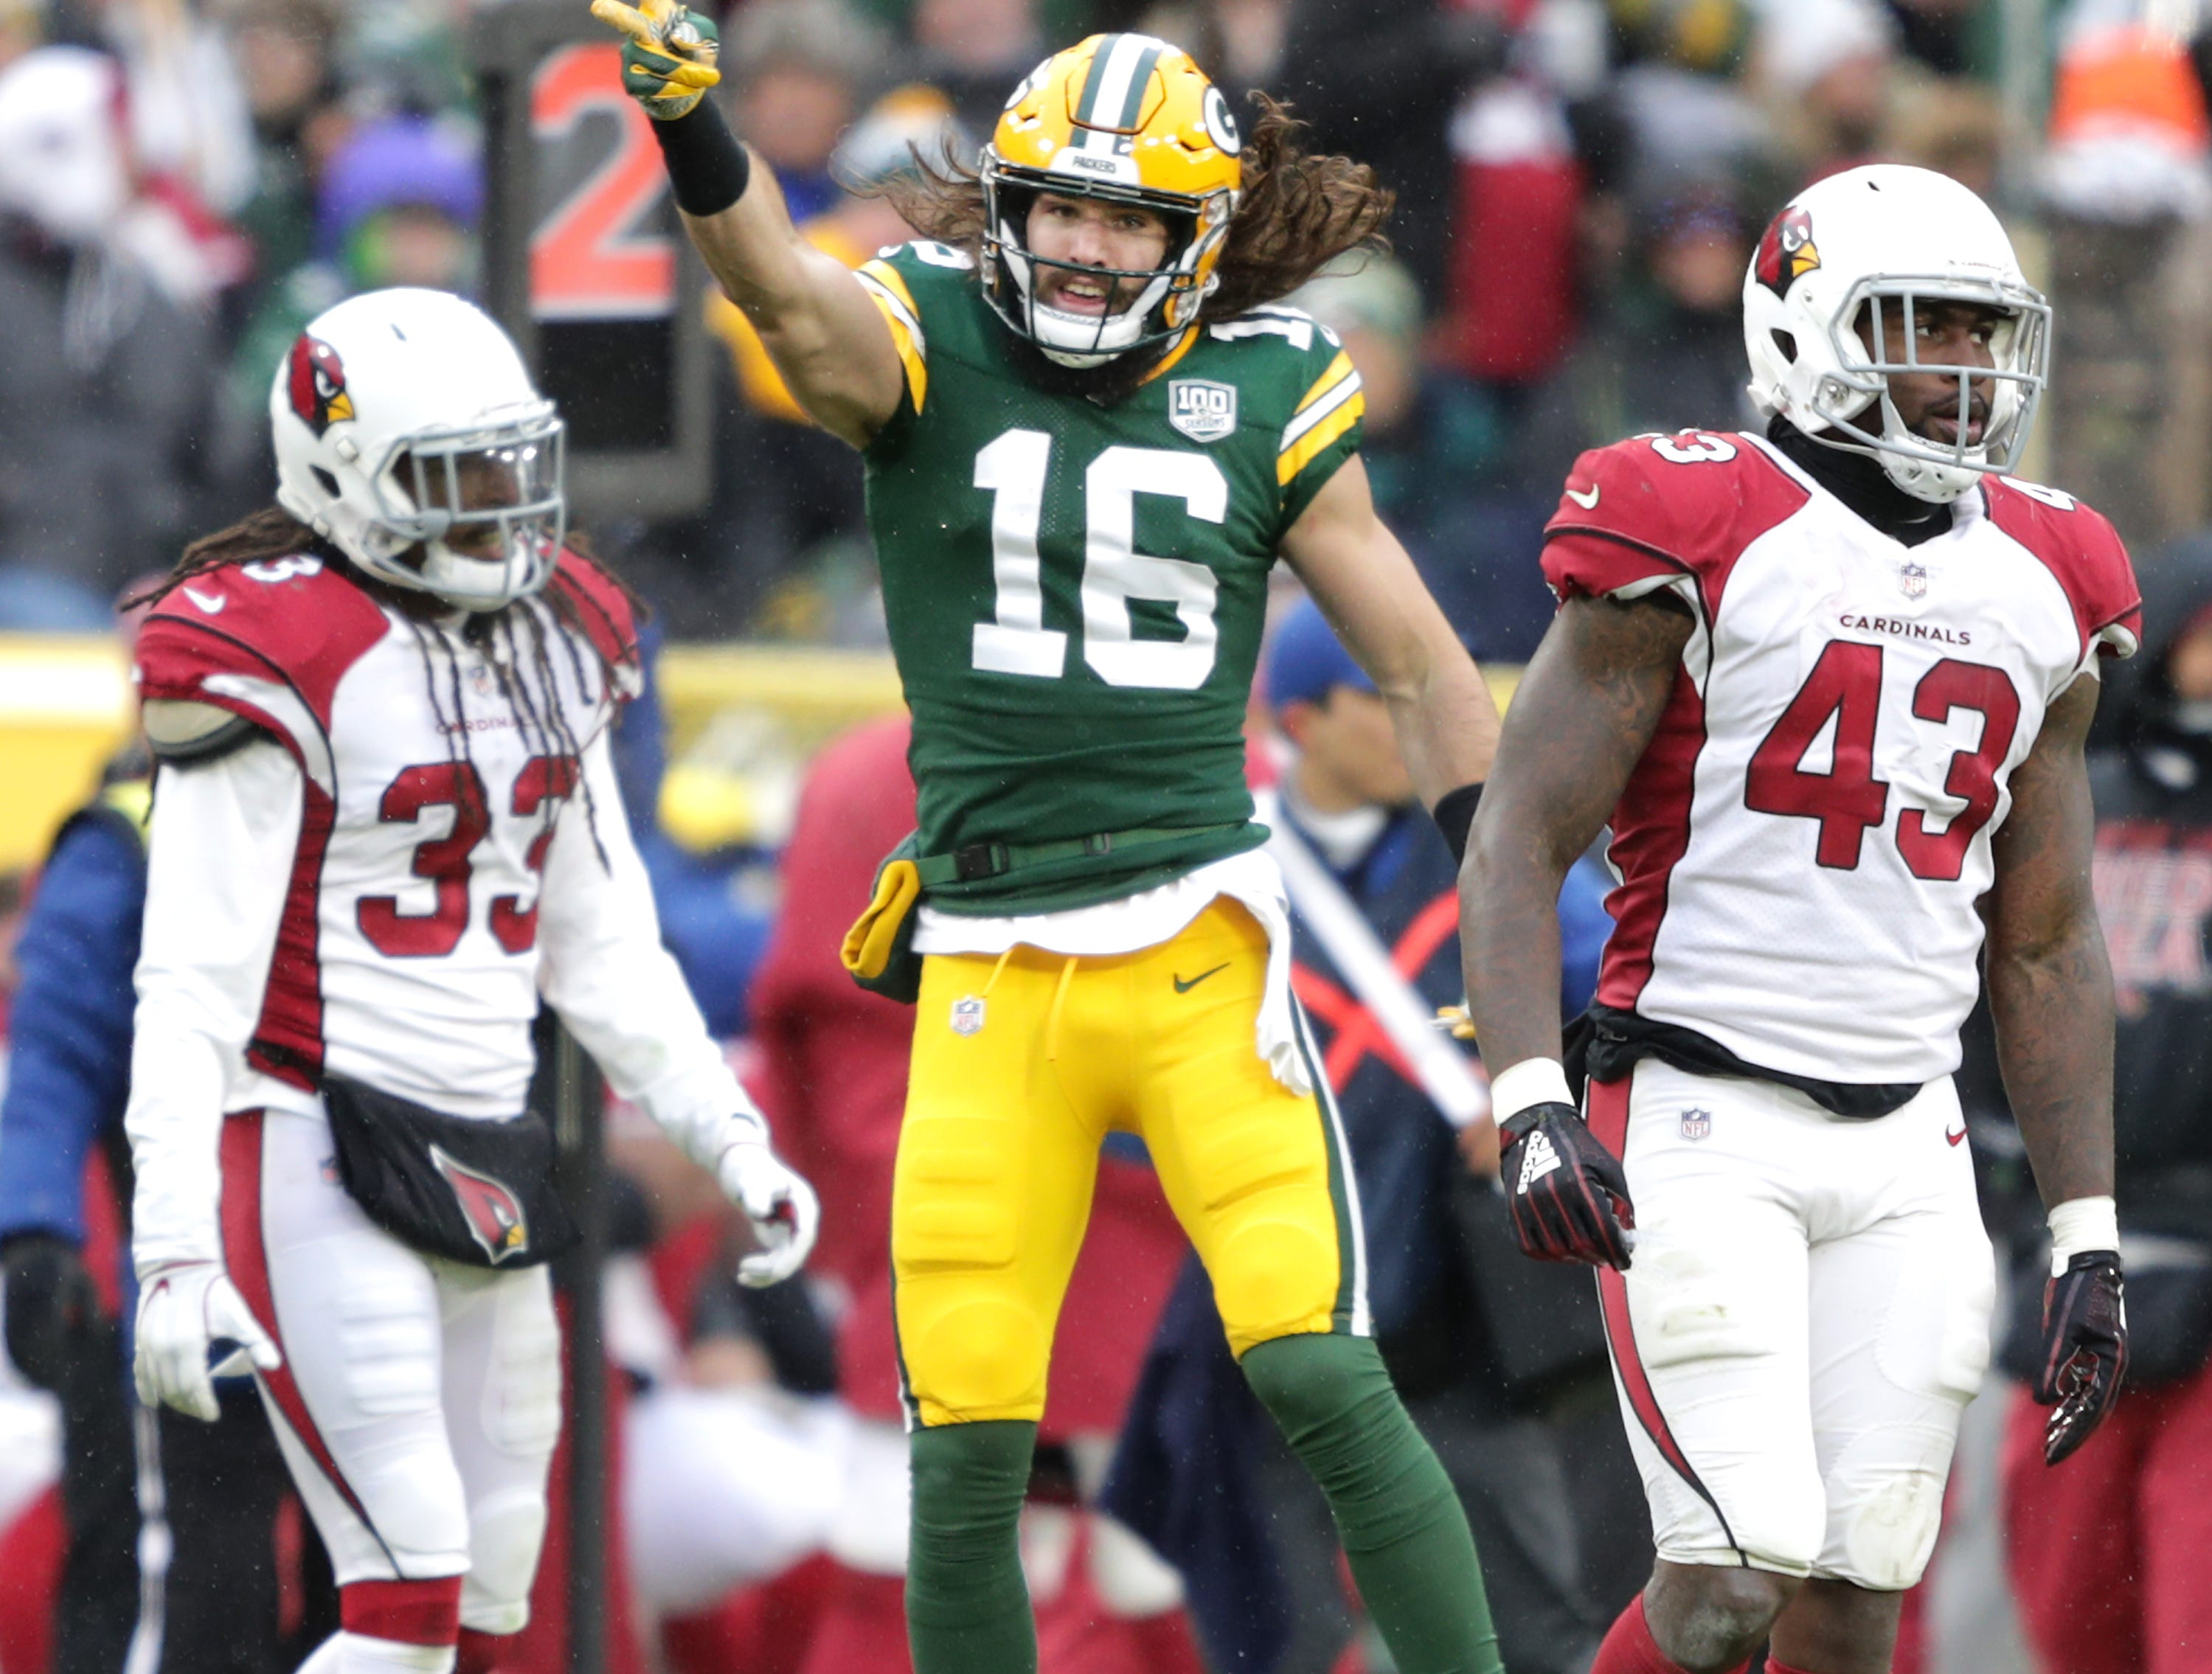 Green Bay Packers wide receiver Jake Kumerow against the Arizona Cardinals during their football game on Sunday, December 2, 2018, at Lambeau Field in Green Bay, Wis.